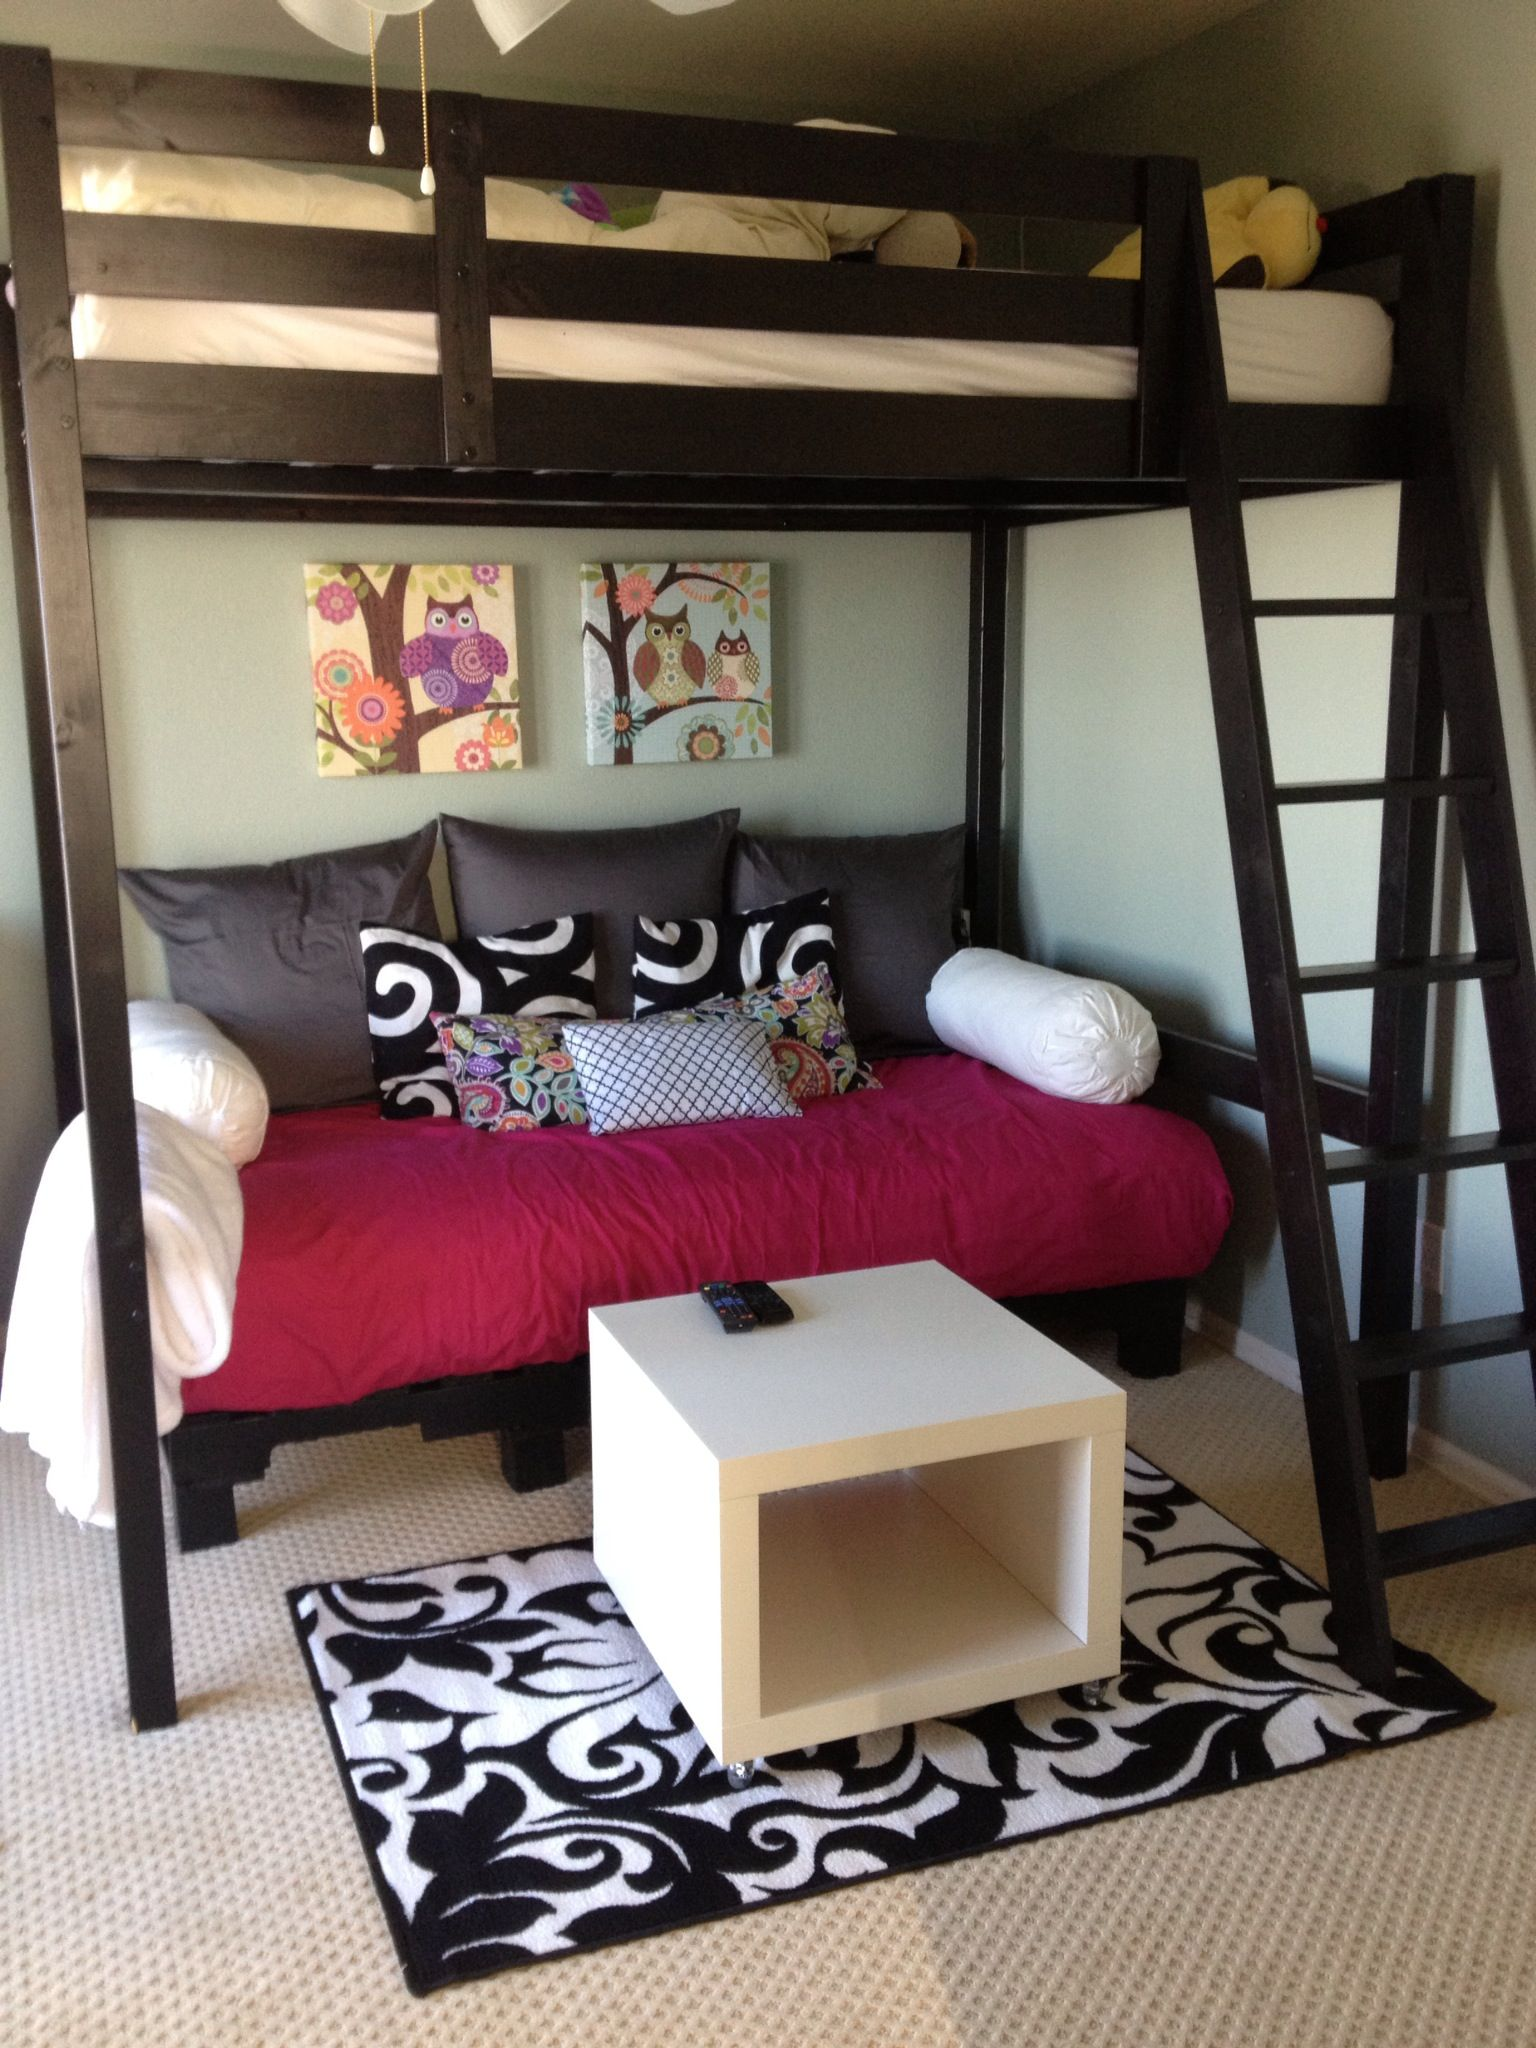 Pin By Casey Kurtz On For The Home Loft Bed With Couch Dorm Room Designs Ikea Loft Bed